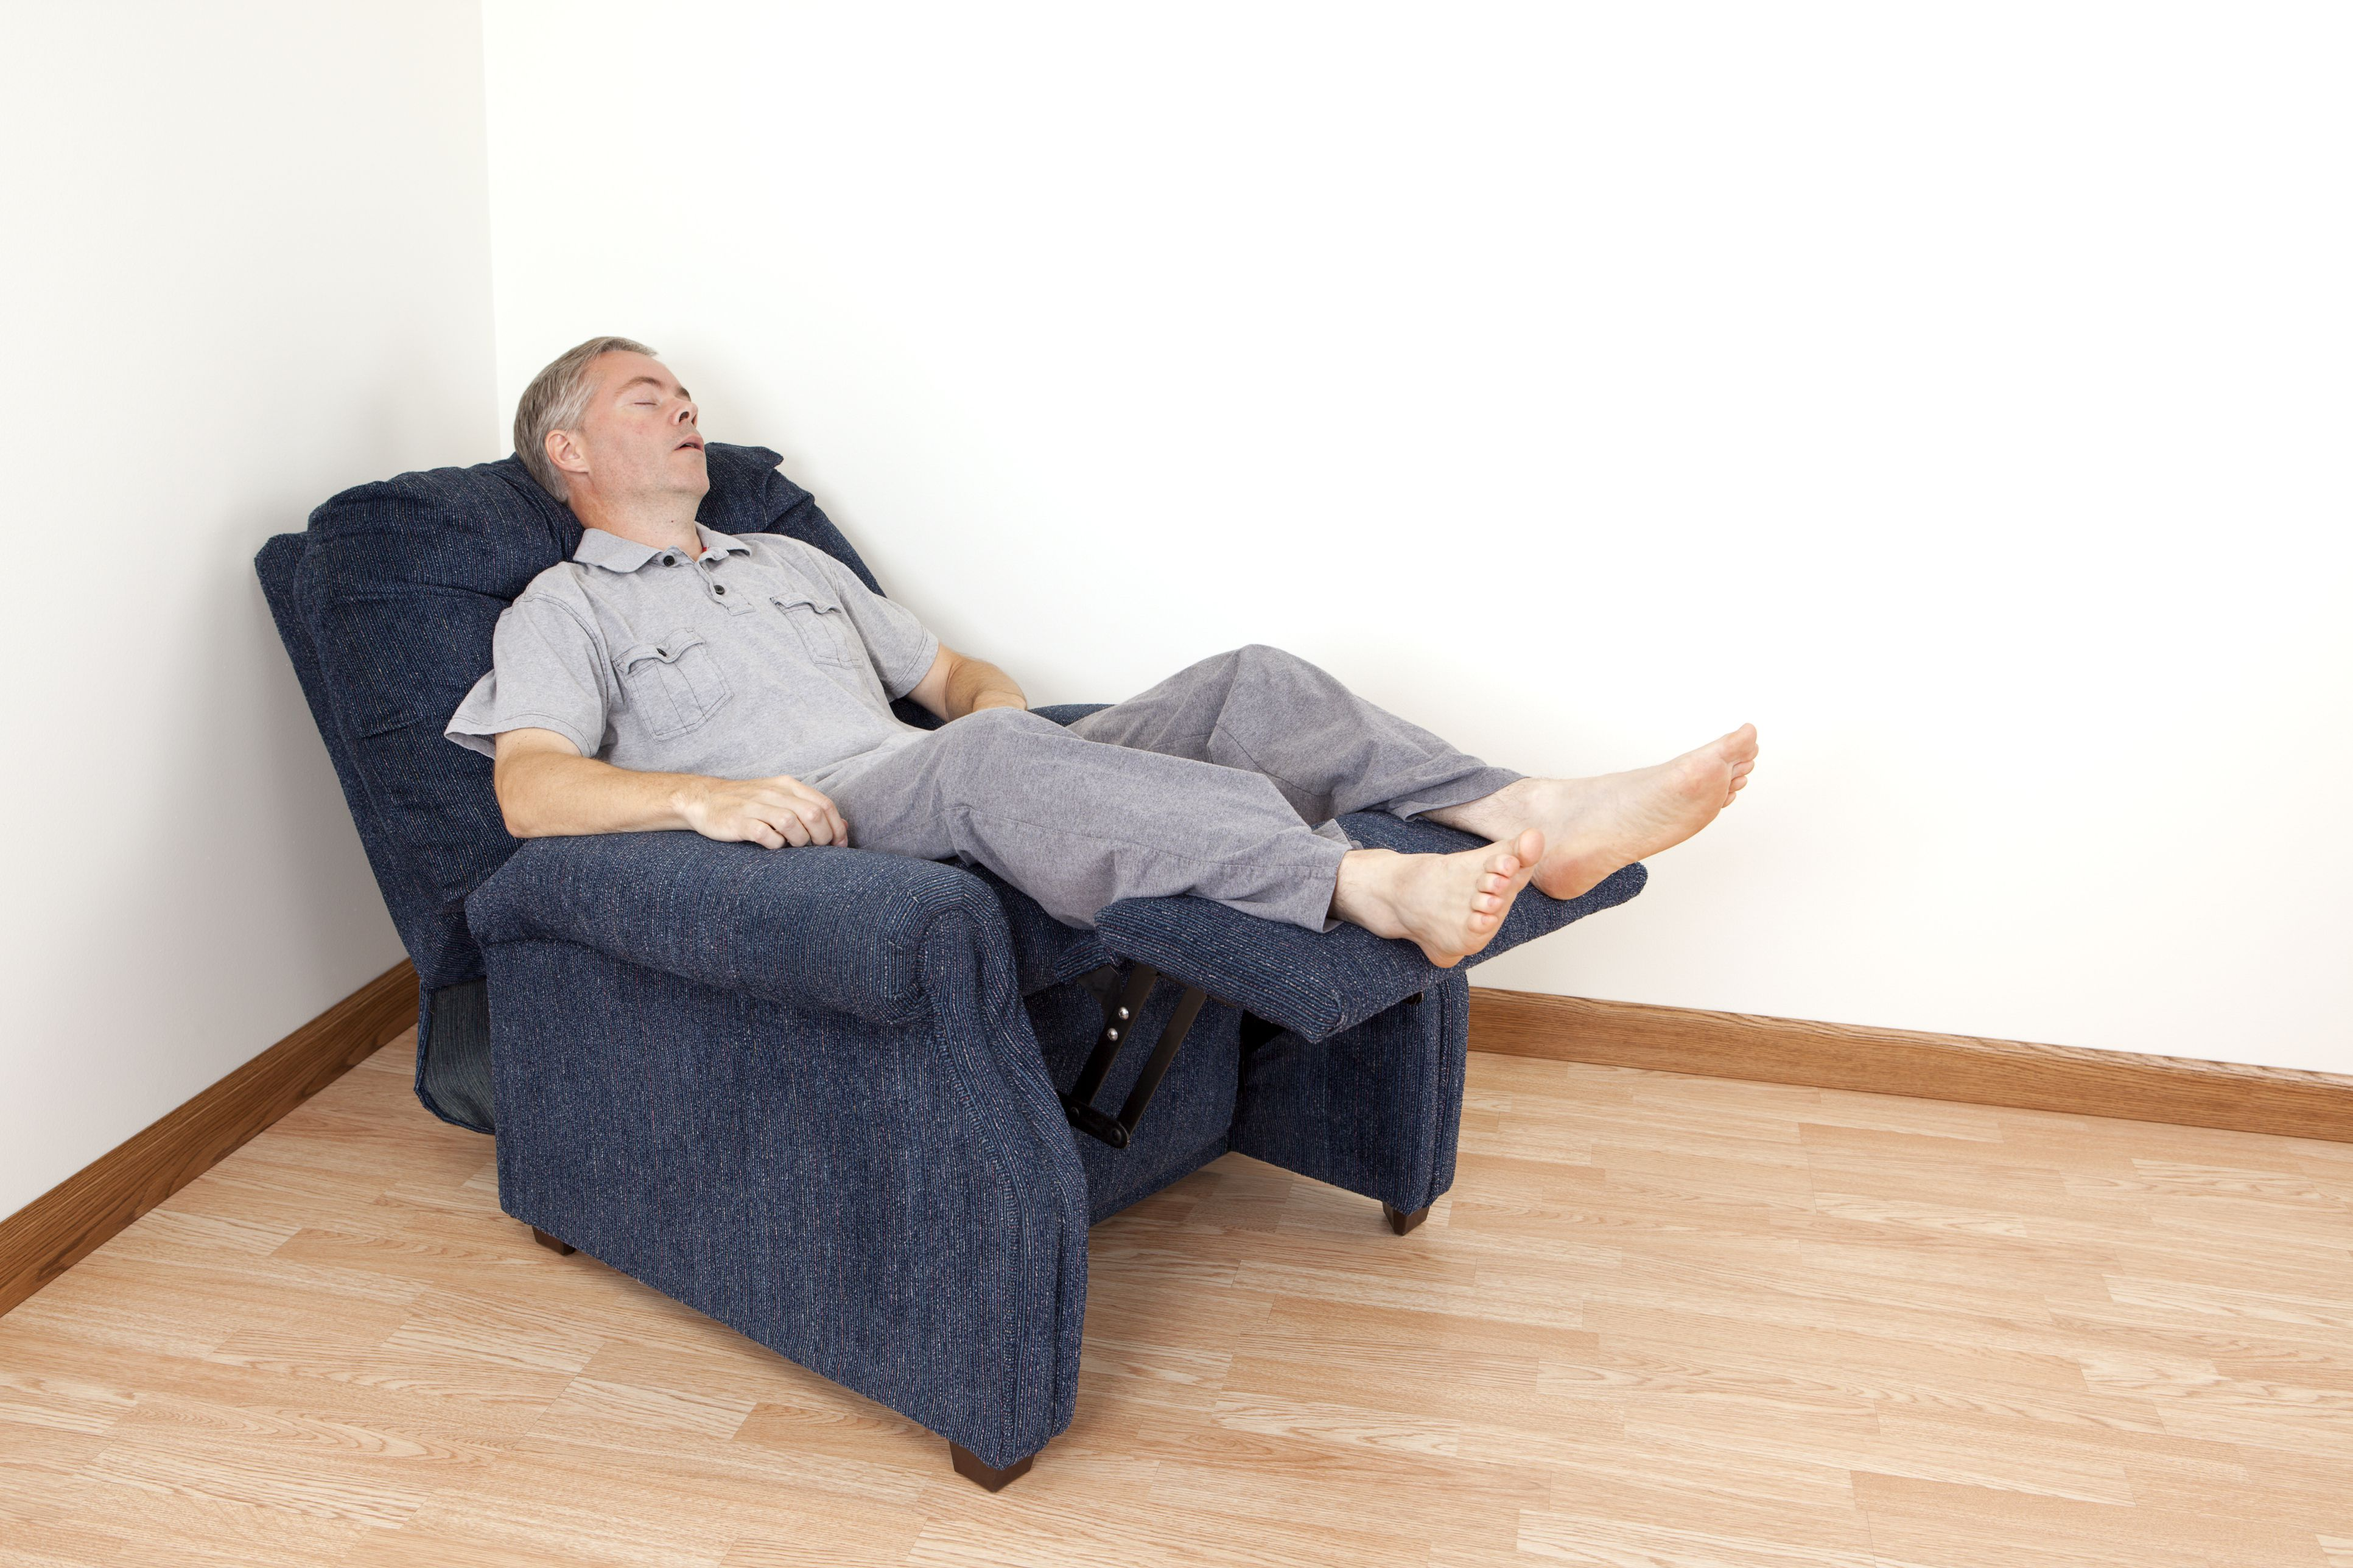 Pros and Cons of a Lift Chair for Arthritis